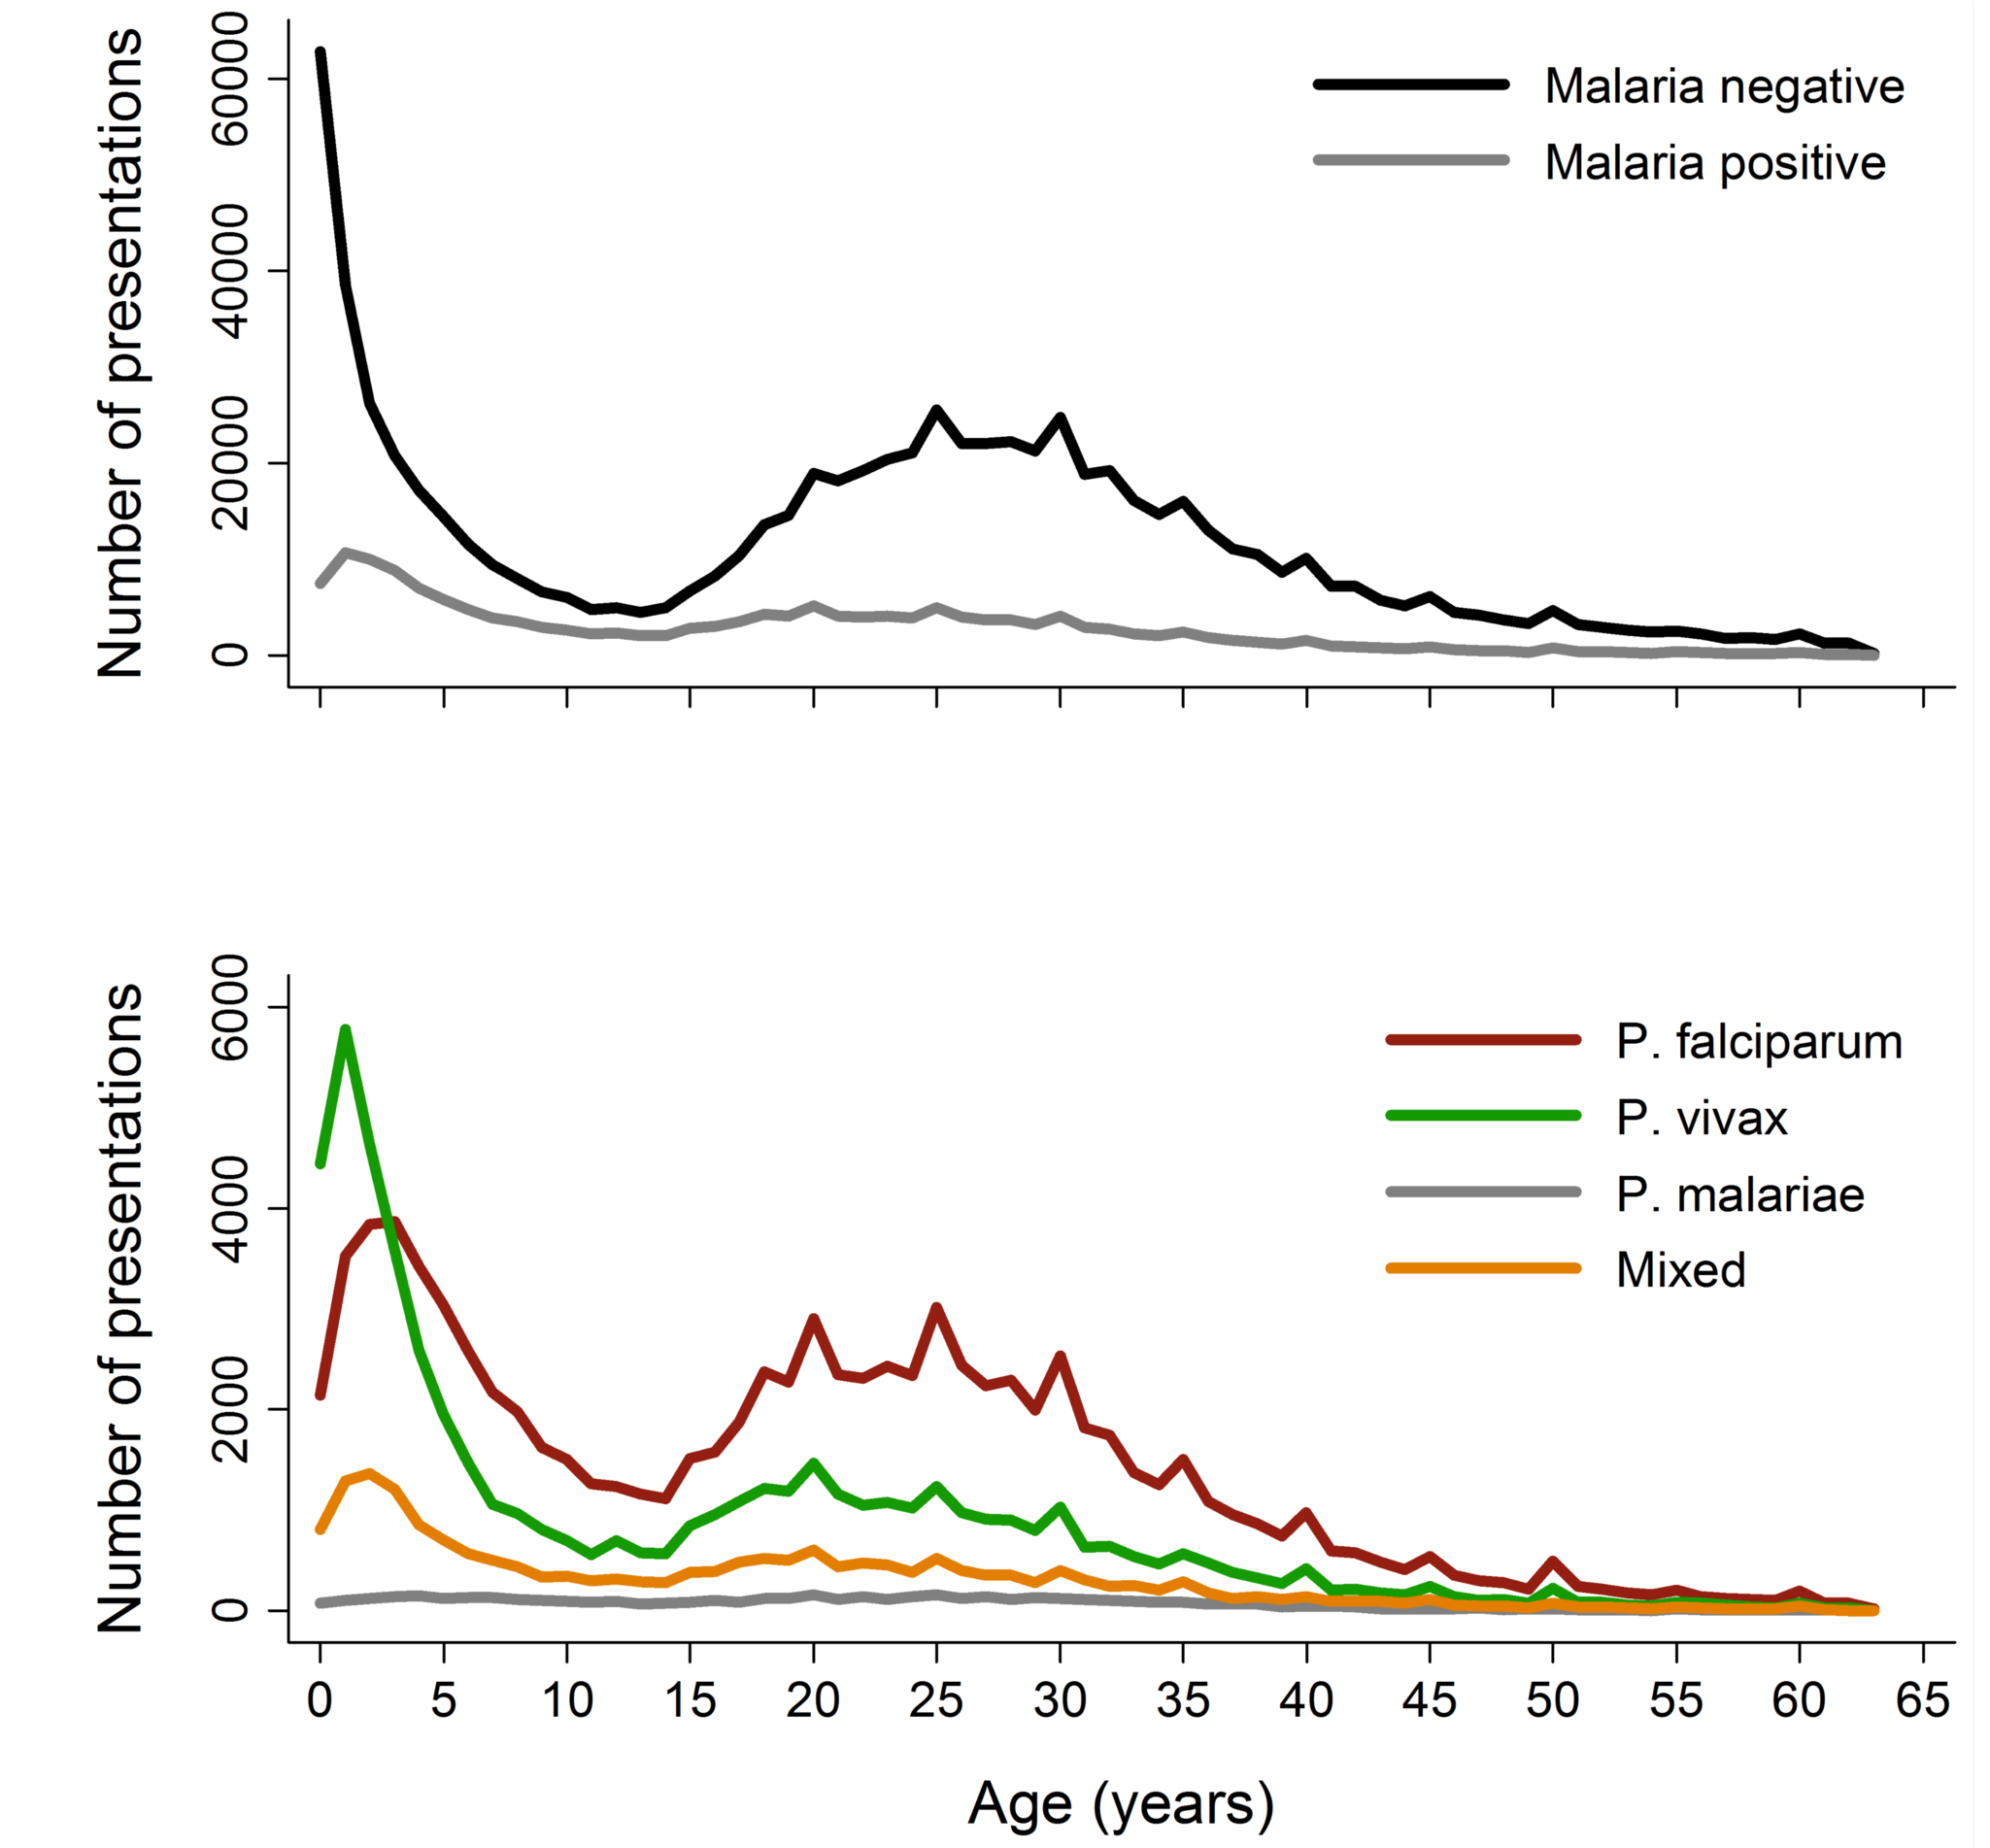 Age distribution of patient presentations to hospital by malaria status (top) and <i>Plasmodium</i> species (bottom).